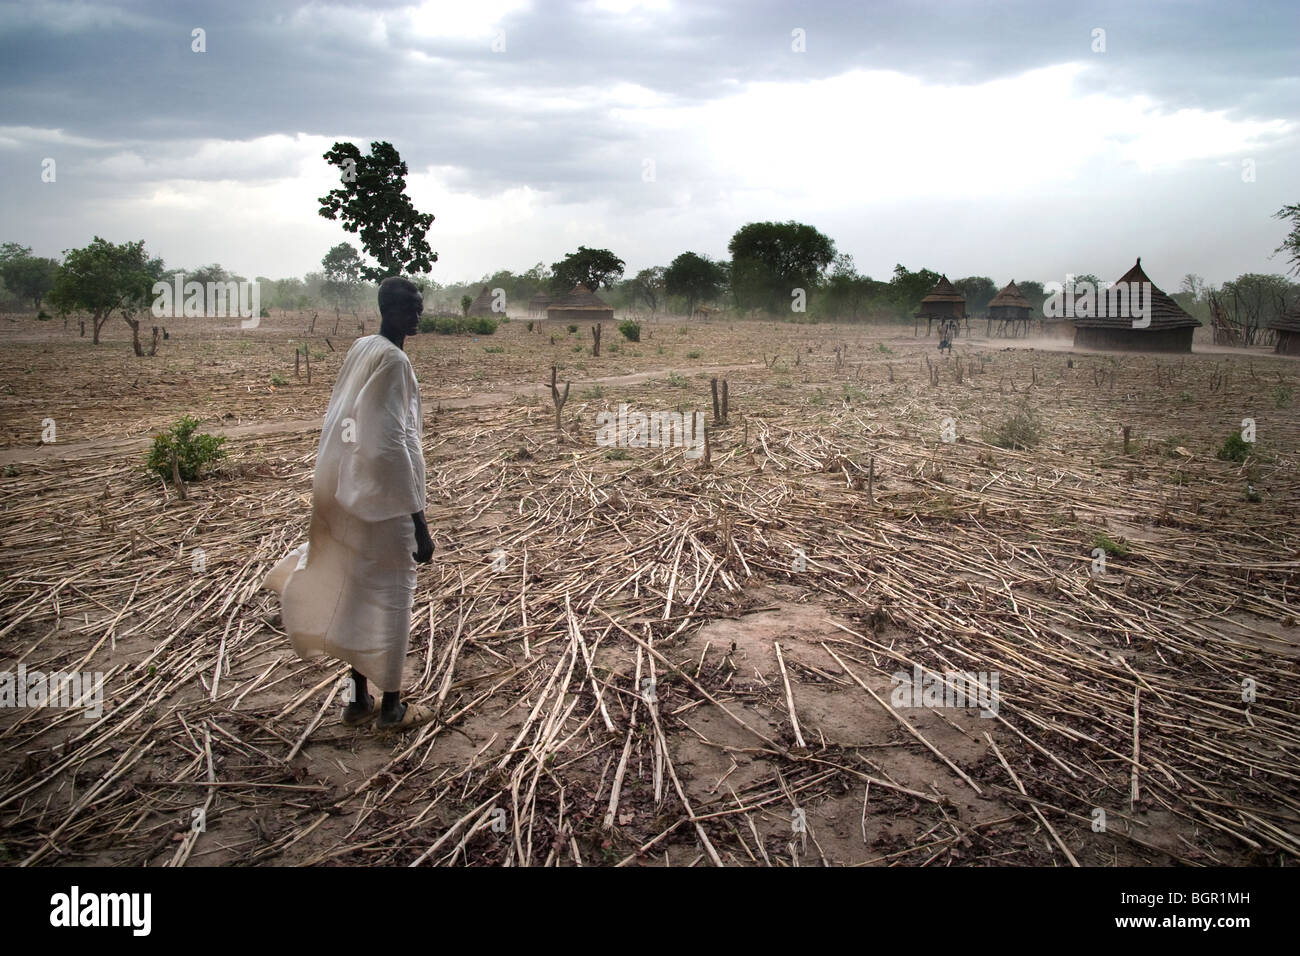 A Dinka man in Southern Sudan - Stock Image